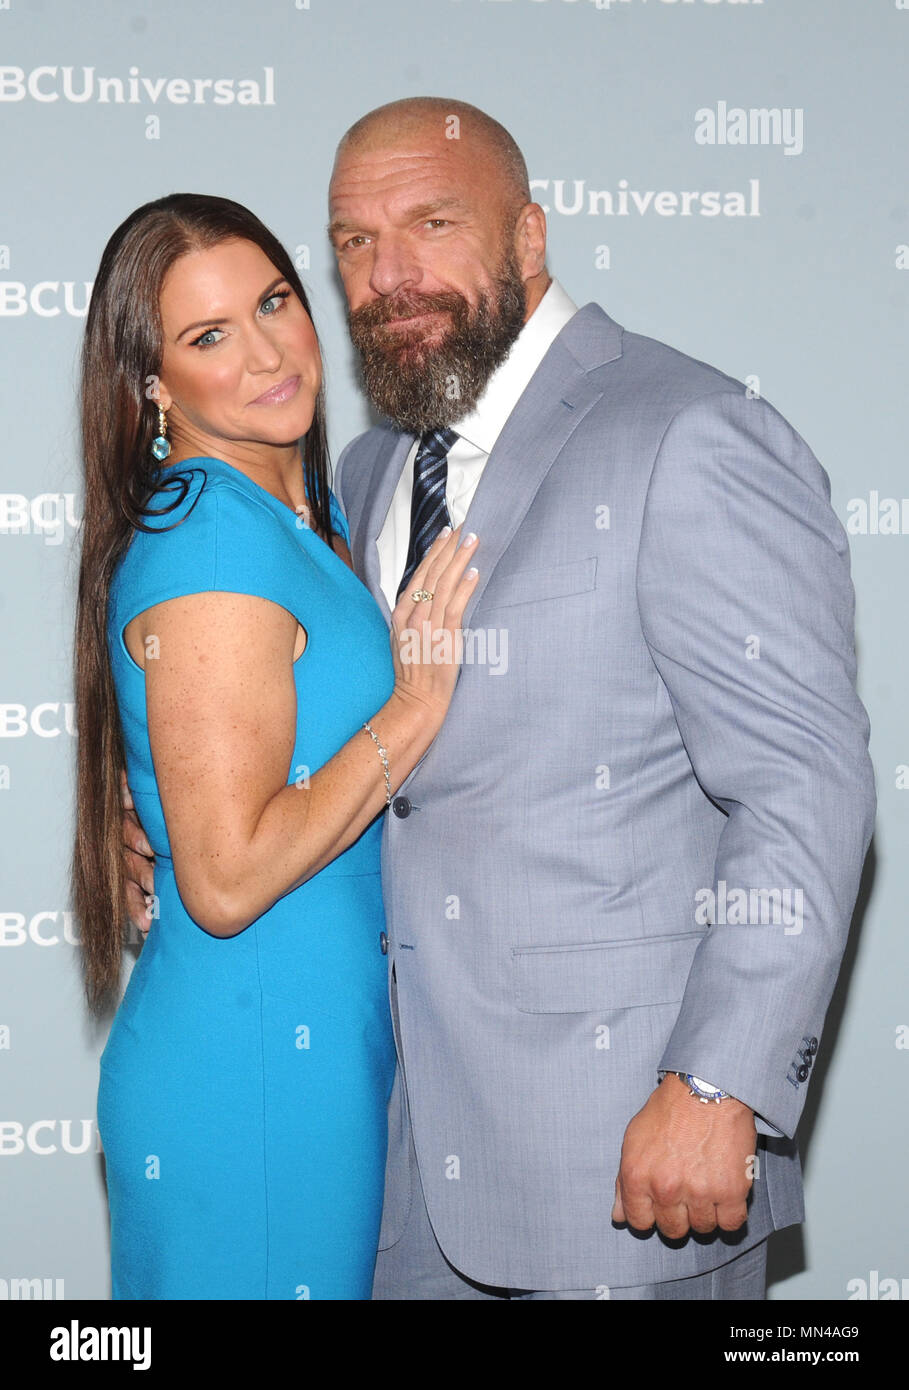 New York, NY, USA. 14th May, 2018. Stephanie McMahon and HHH at the 2018 NBCUniversal Upfront at Rockefeller Center in New York City on May 14, 2018. Credit: John Palmer/Media Punch/Alamy Live News - Stock Image